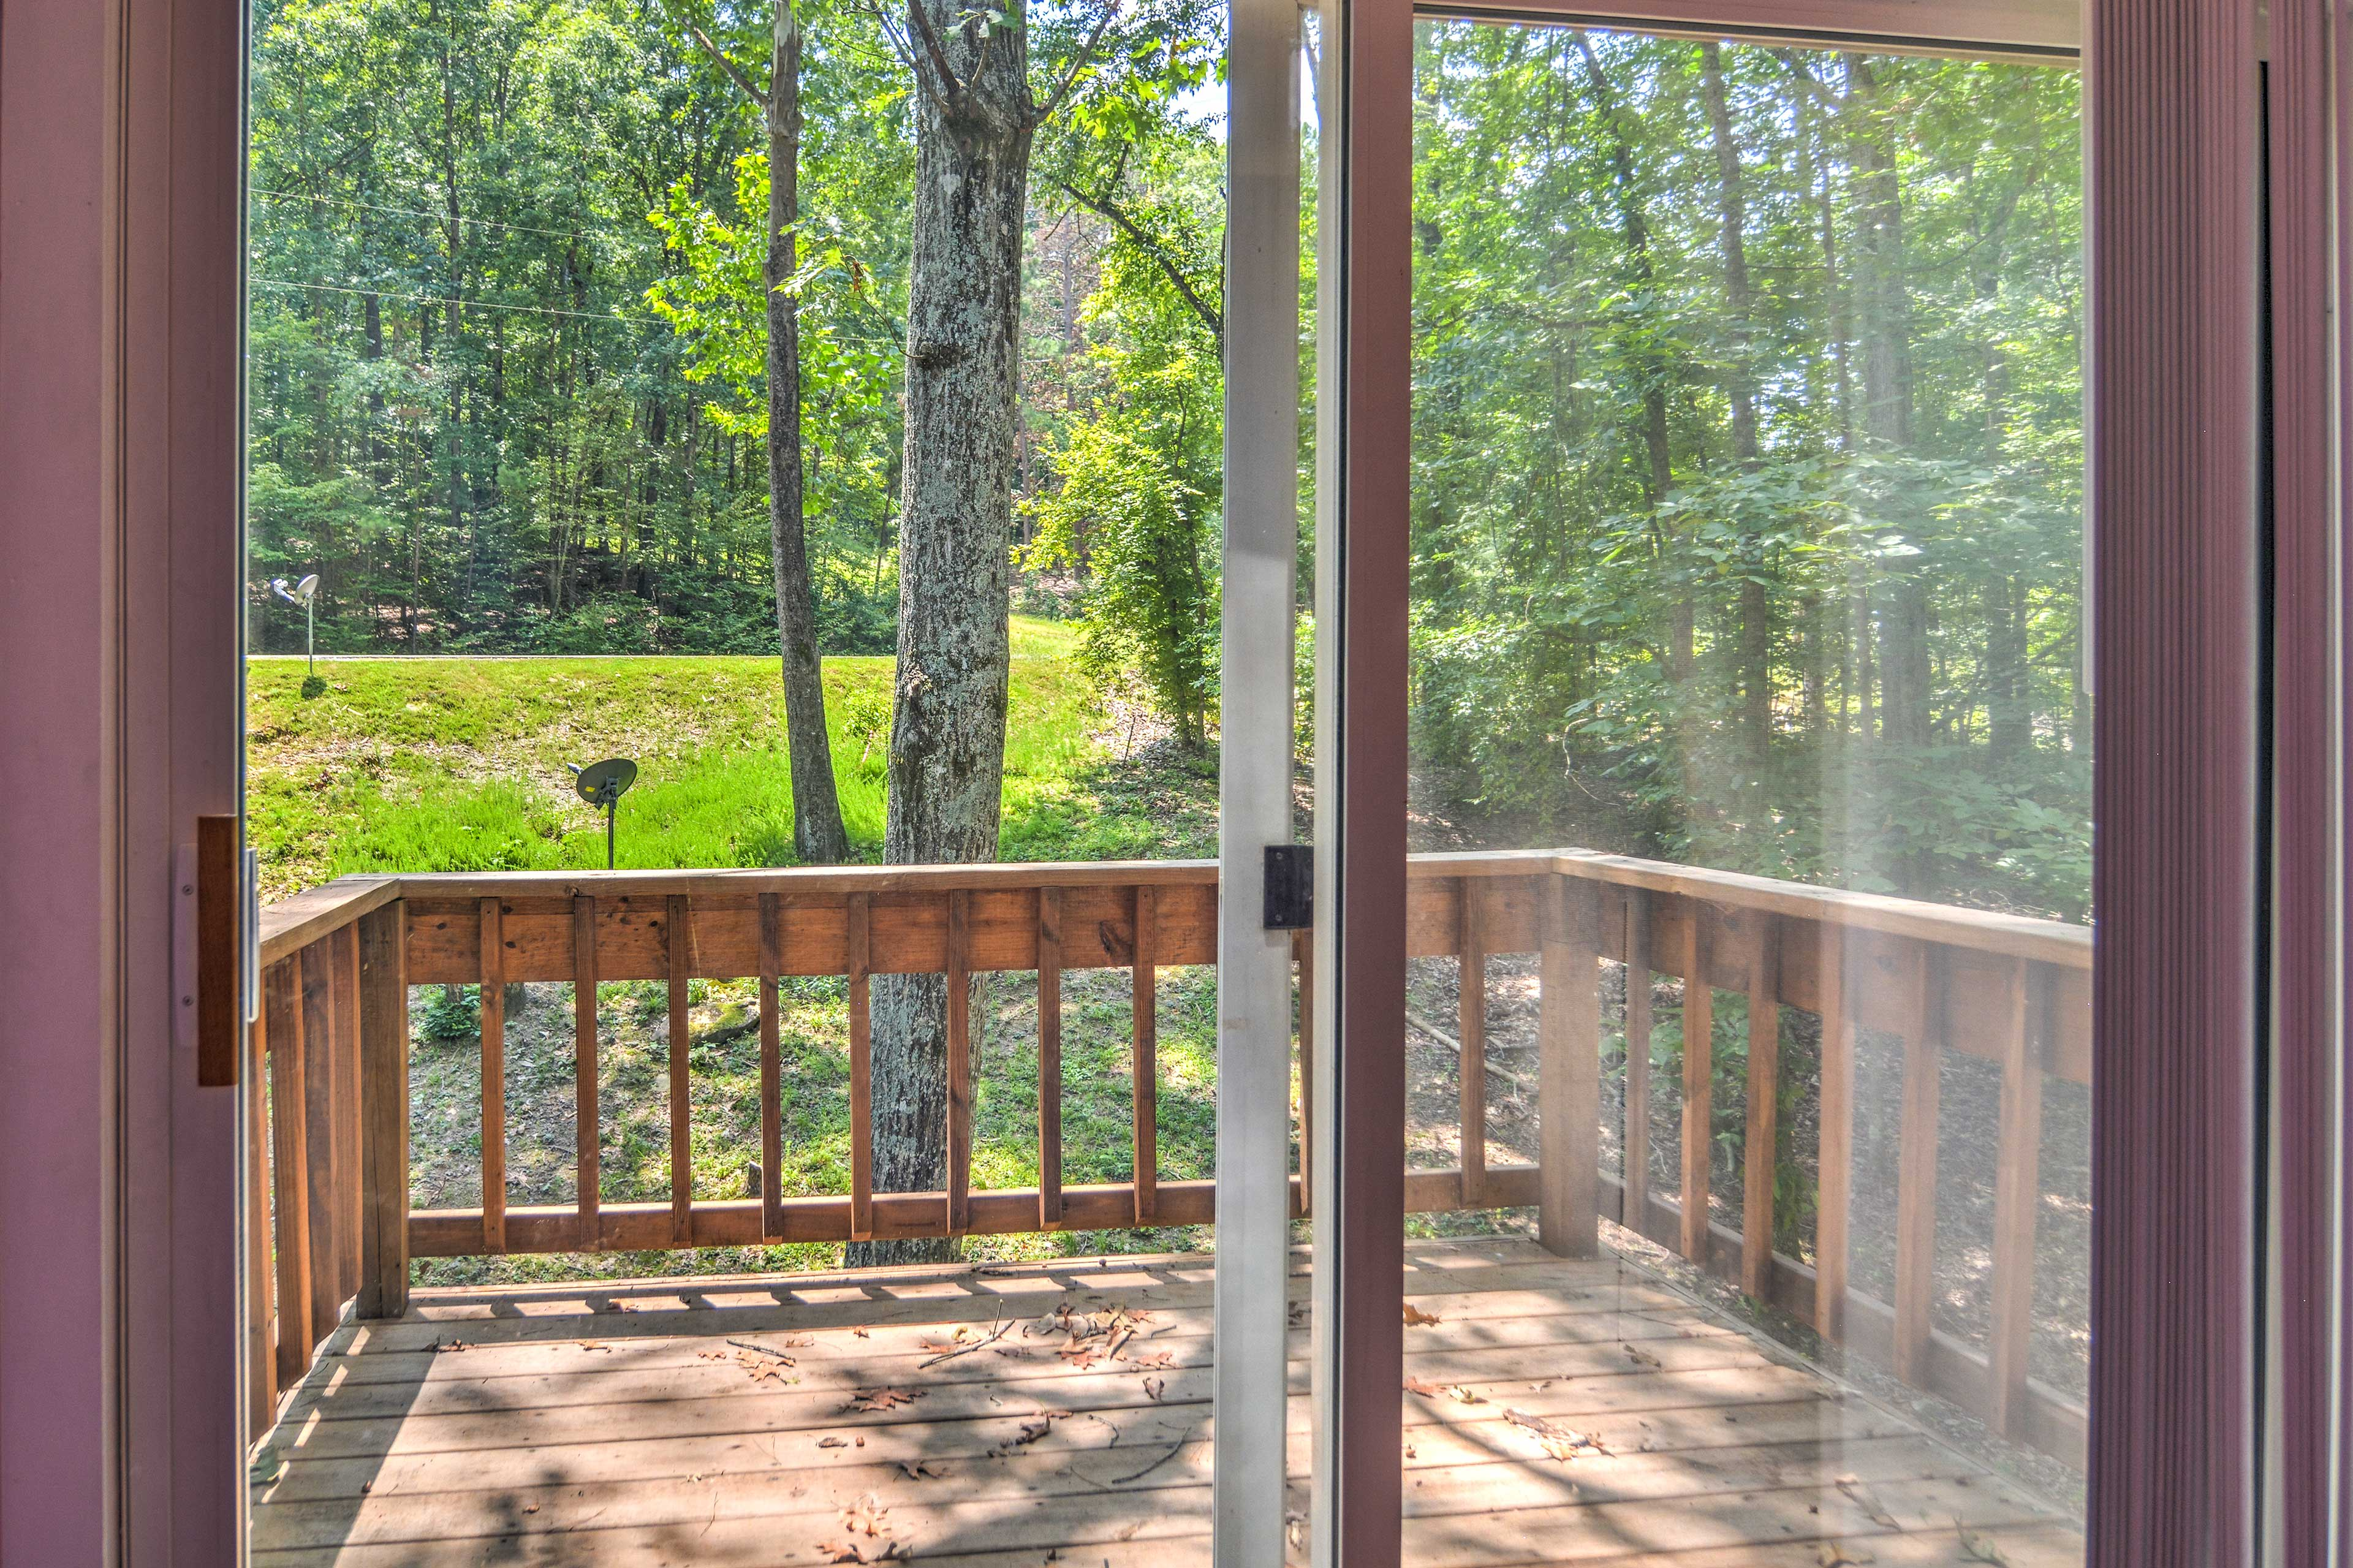 An upstairs balcony looks out upon the dense forest.